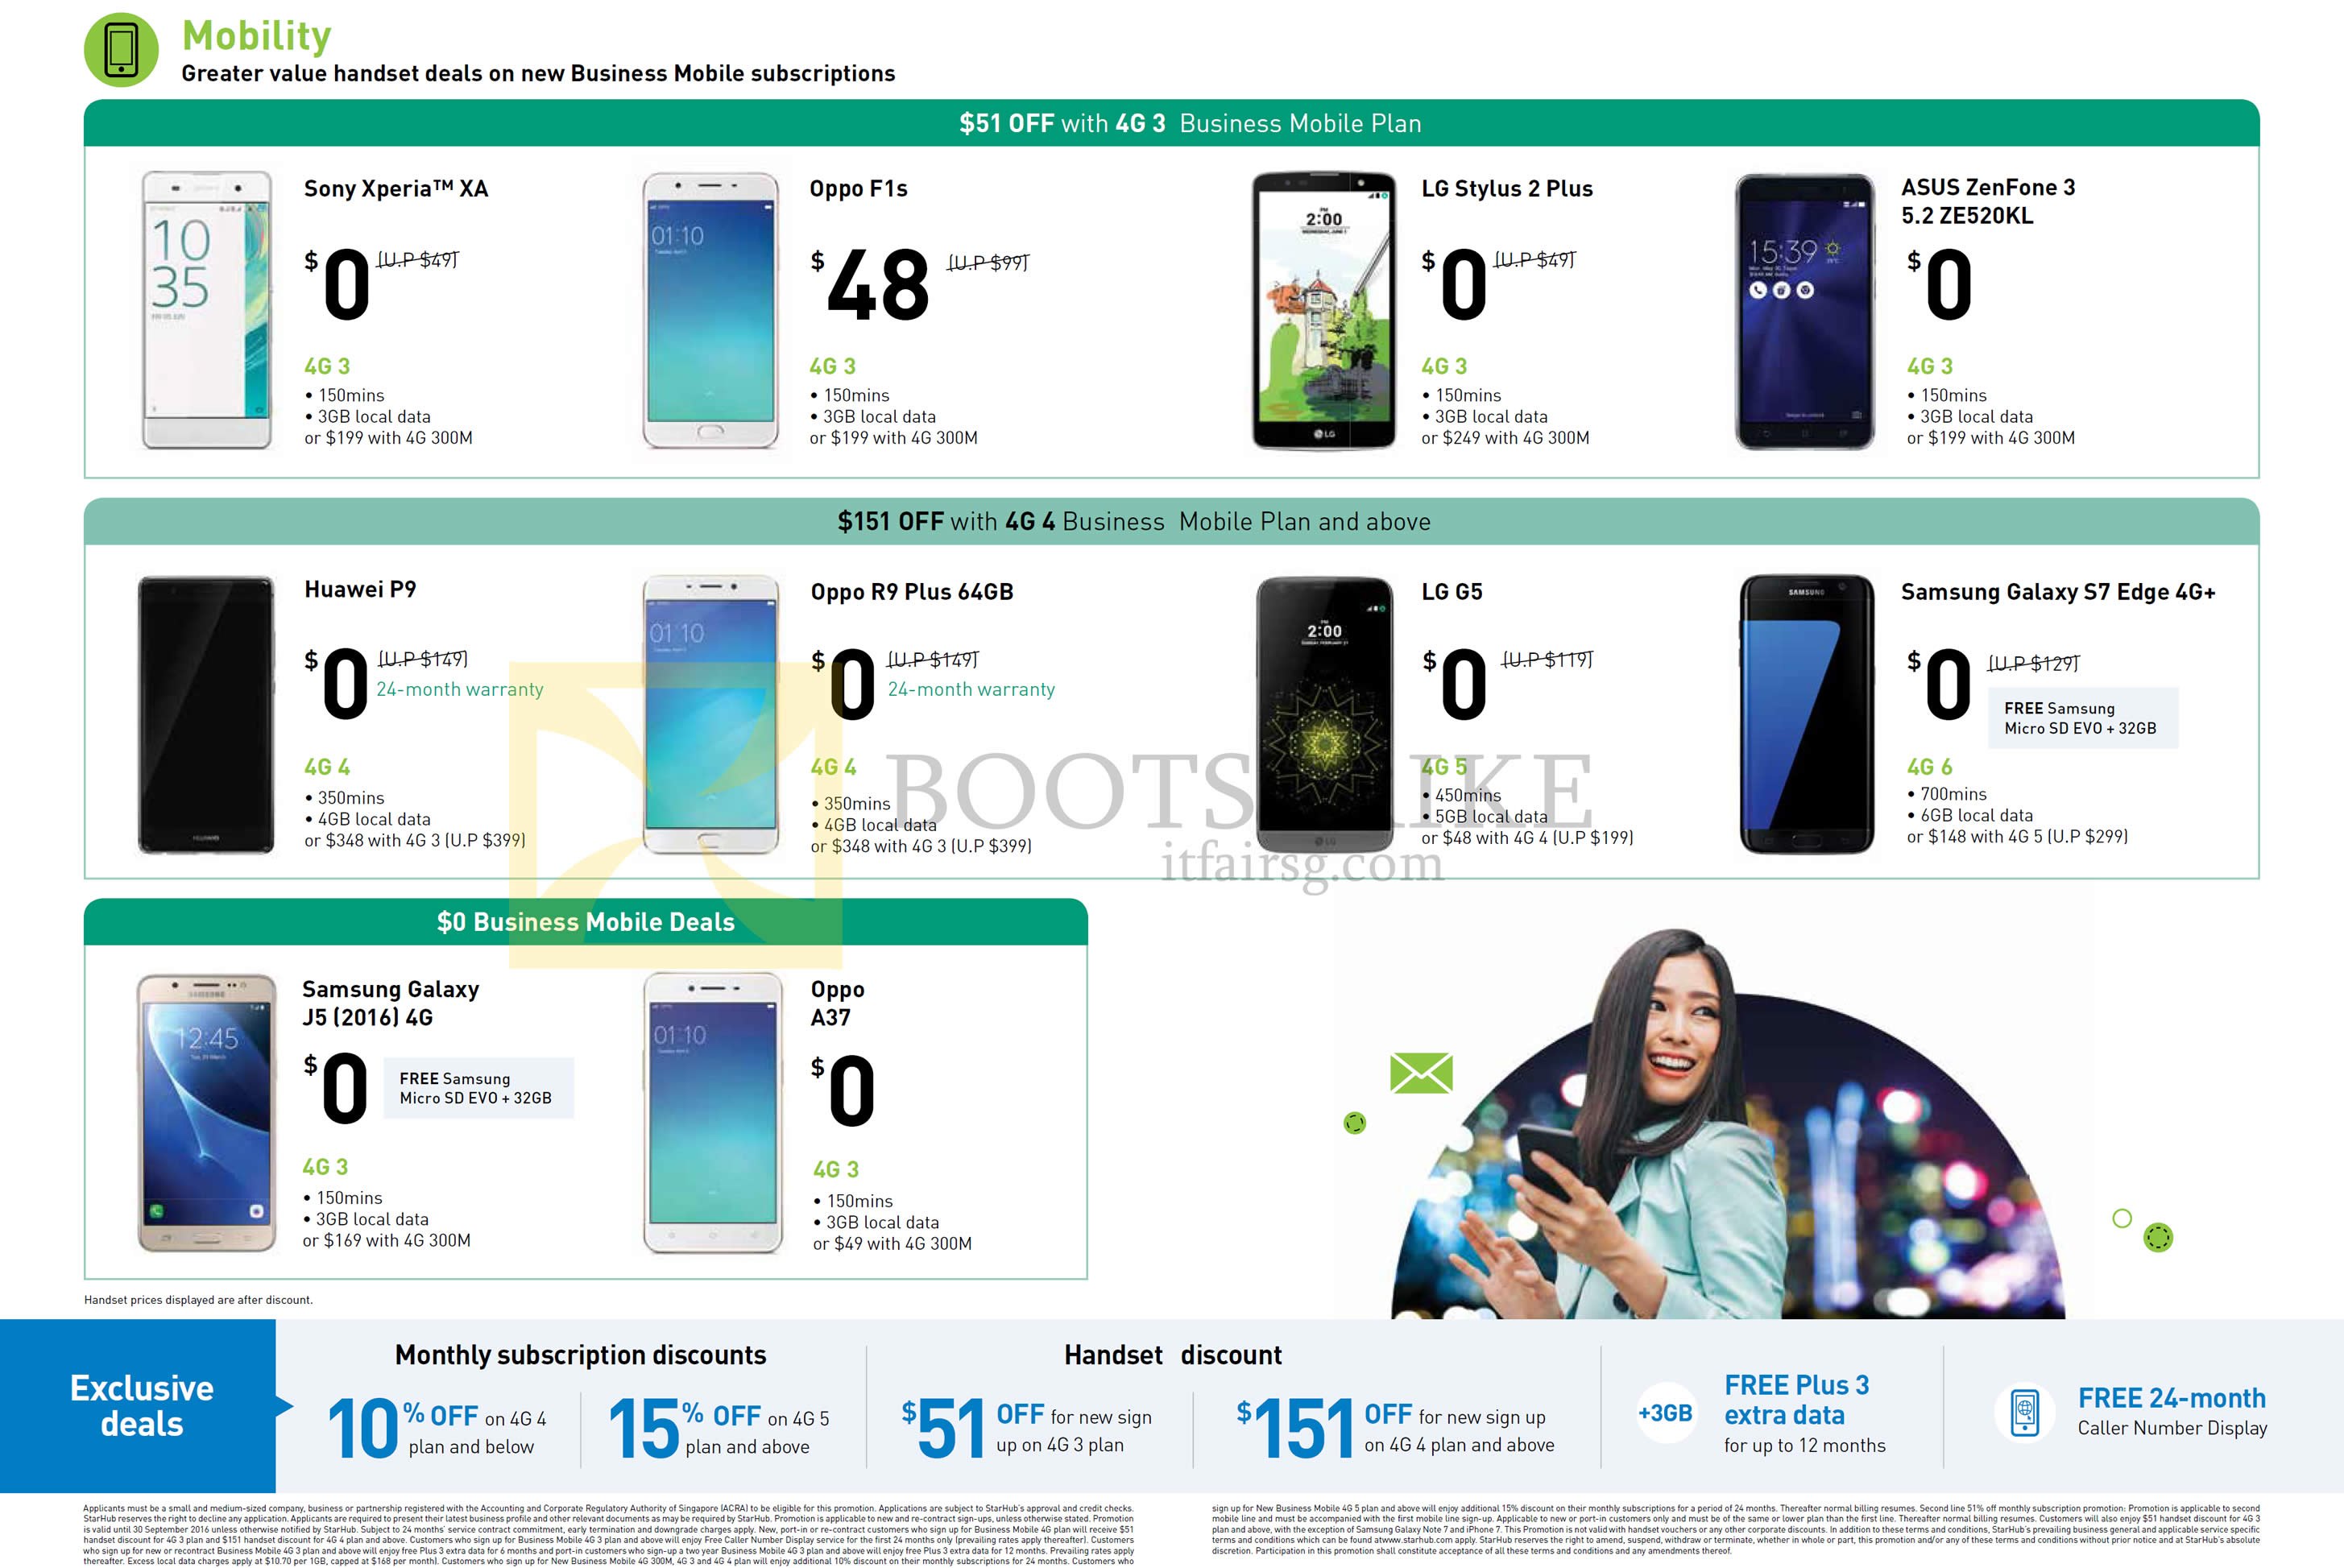 COMEX 2016 price list image brochure of StarHub Business Mobile Phones Sony Xperia XZ, Oppo F1s, R9 Plus, A37, LG Stylus 2 Plus, G5, Asus Zenfone 3 5.2 ZE520KL, Samsung Galaxy S7 Edge, J7 2016, Huawei P9